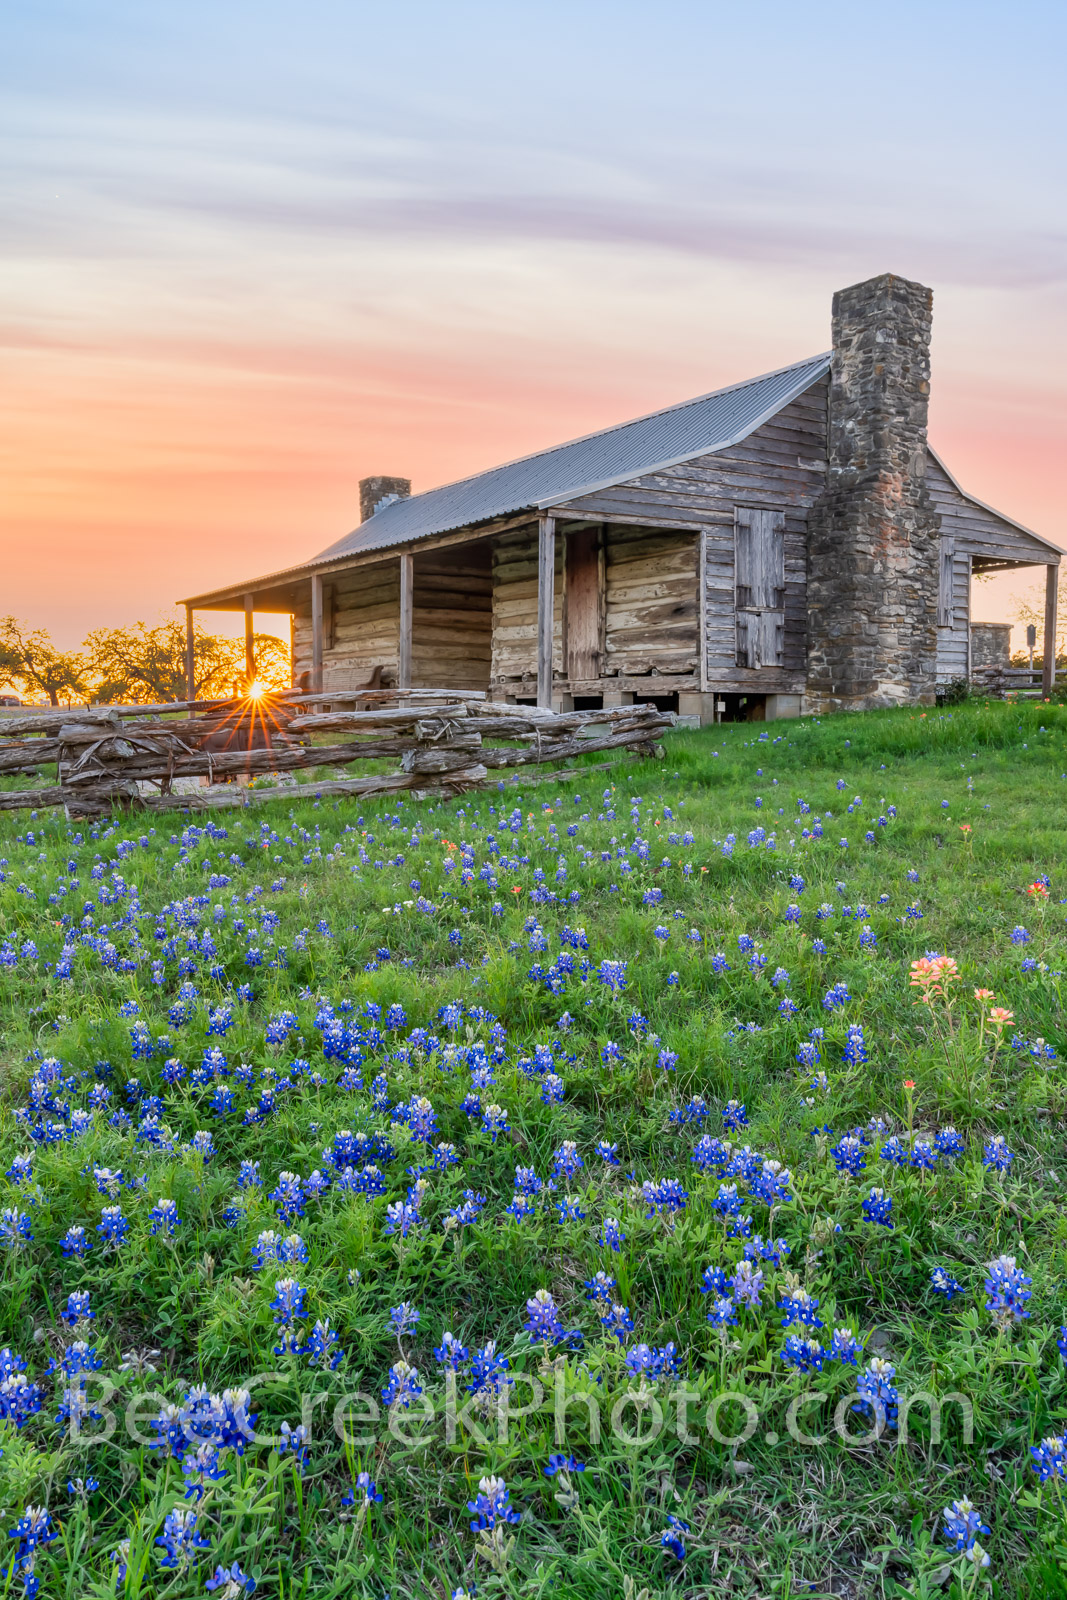 John P. Cole, Cole settlement, cabin, log cabin, bluebonnets, indian paintbrush, wildflowers, texas bluebonnets, texas wildflowers, old baylor park, vertical, baylor university, historic, rural, Independence texas, Sam Houston, Chief Justice of Washington County, founders, historical, preservation,